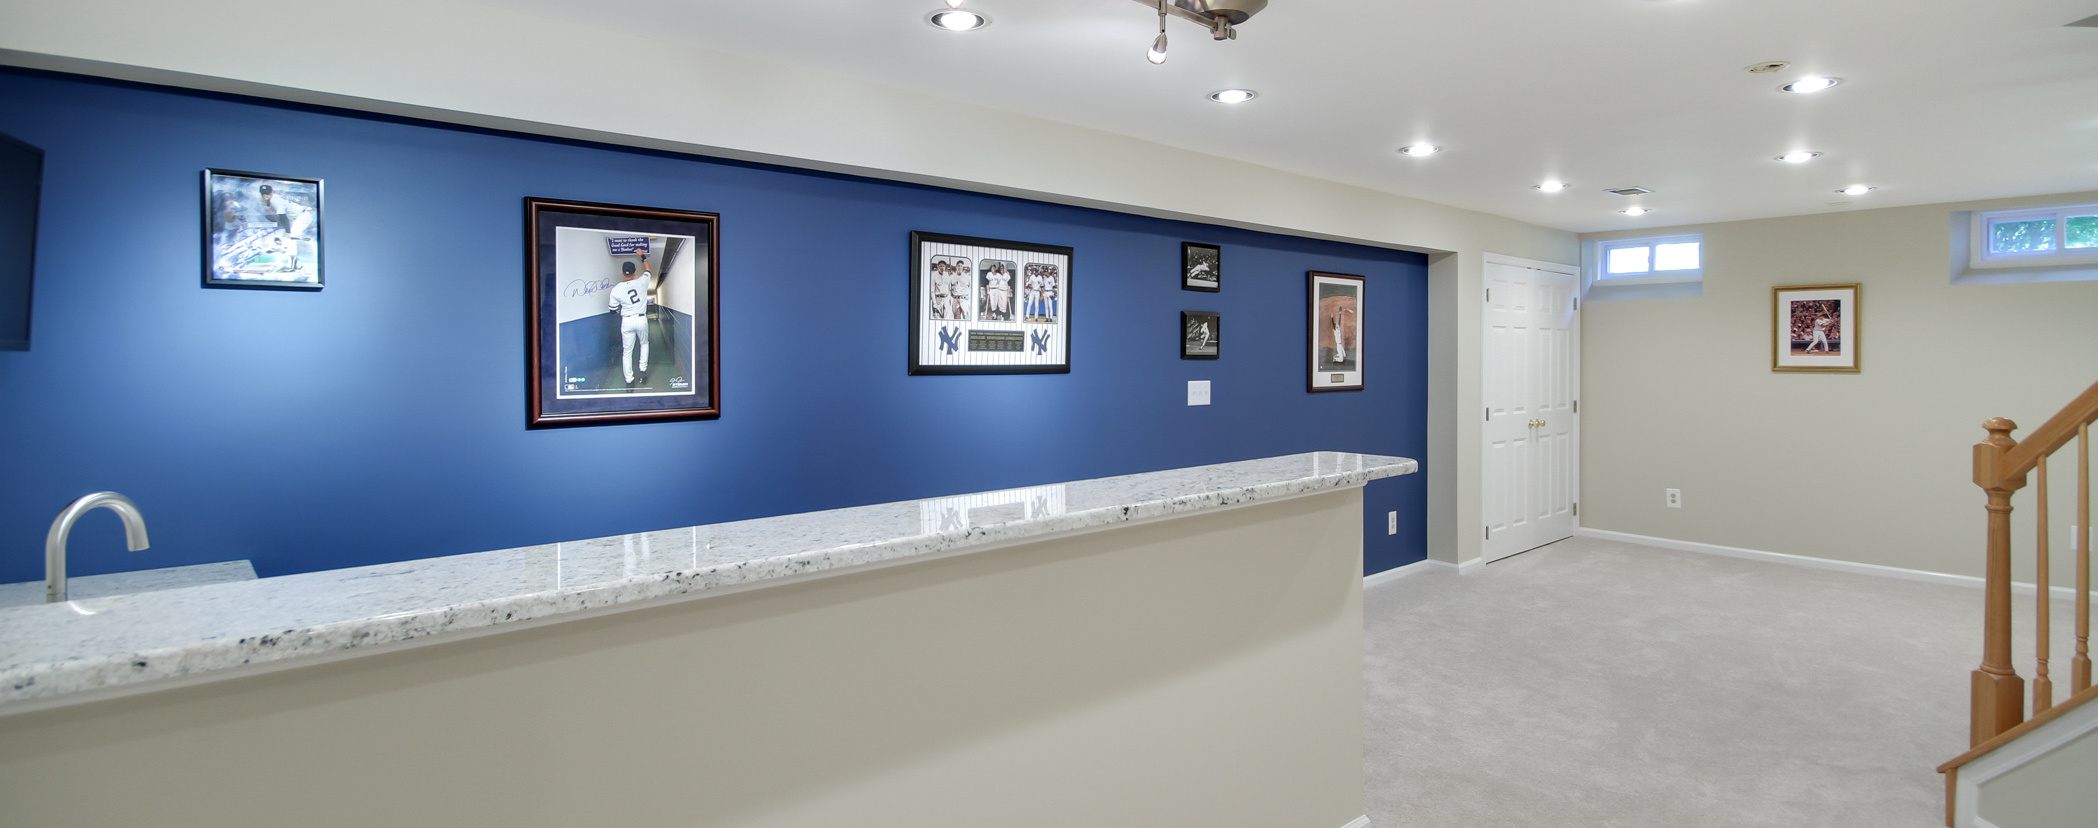 New jersey basement remodeling des home renovations - Basement design services ...